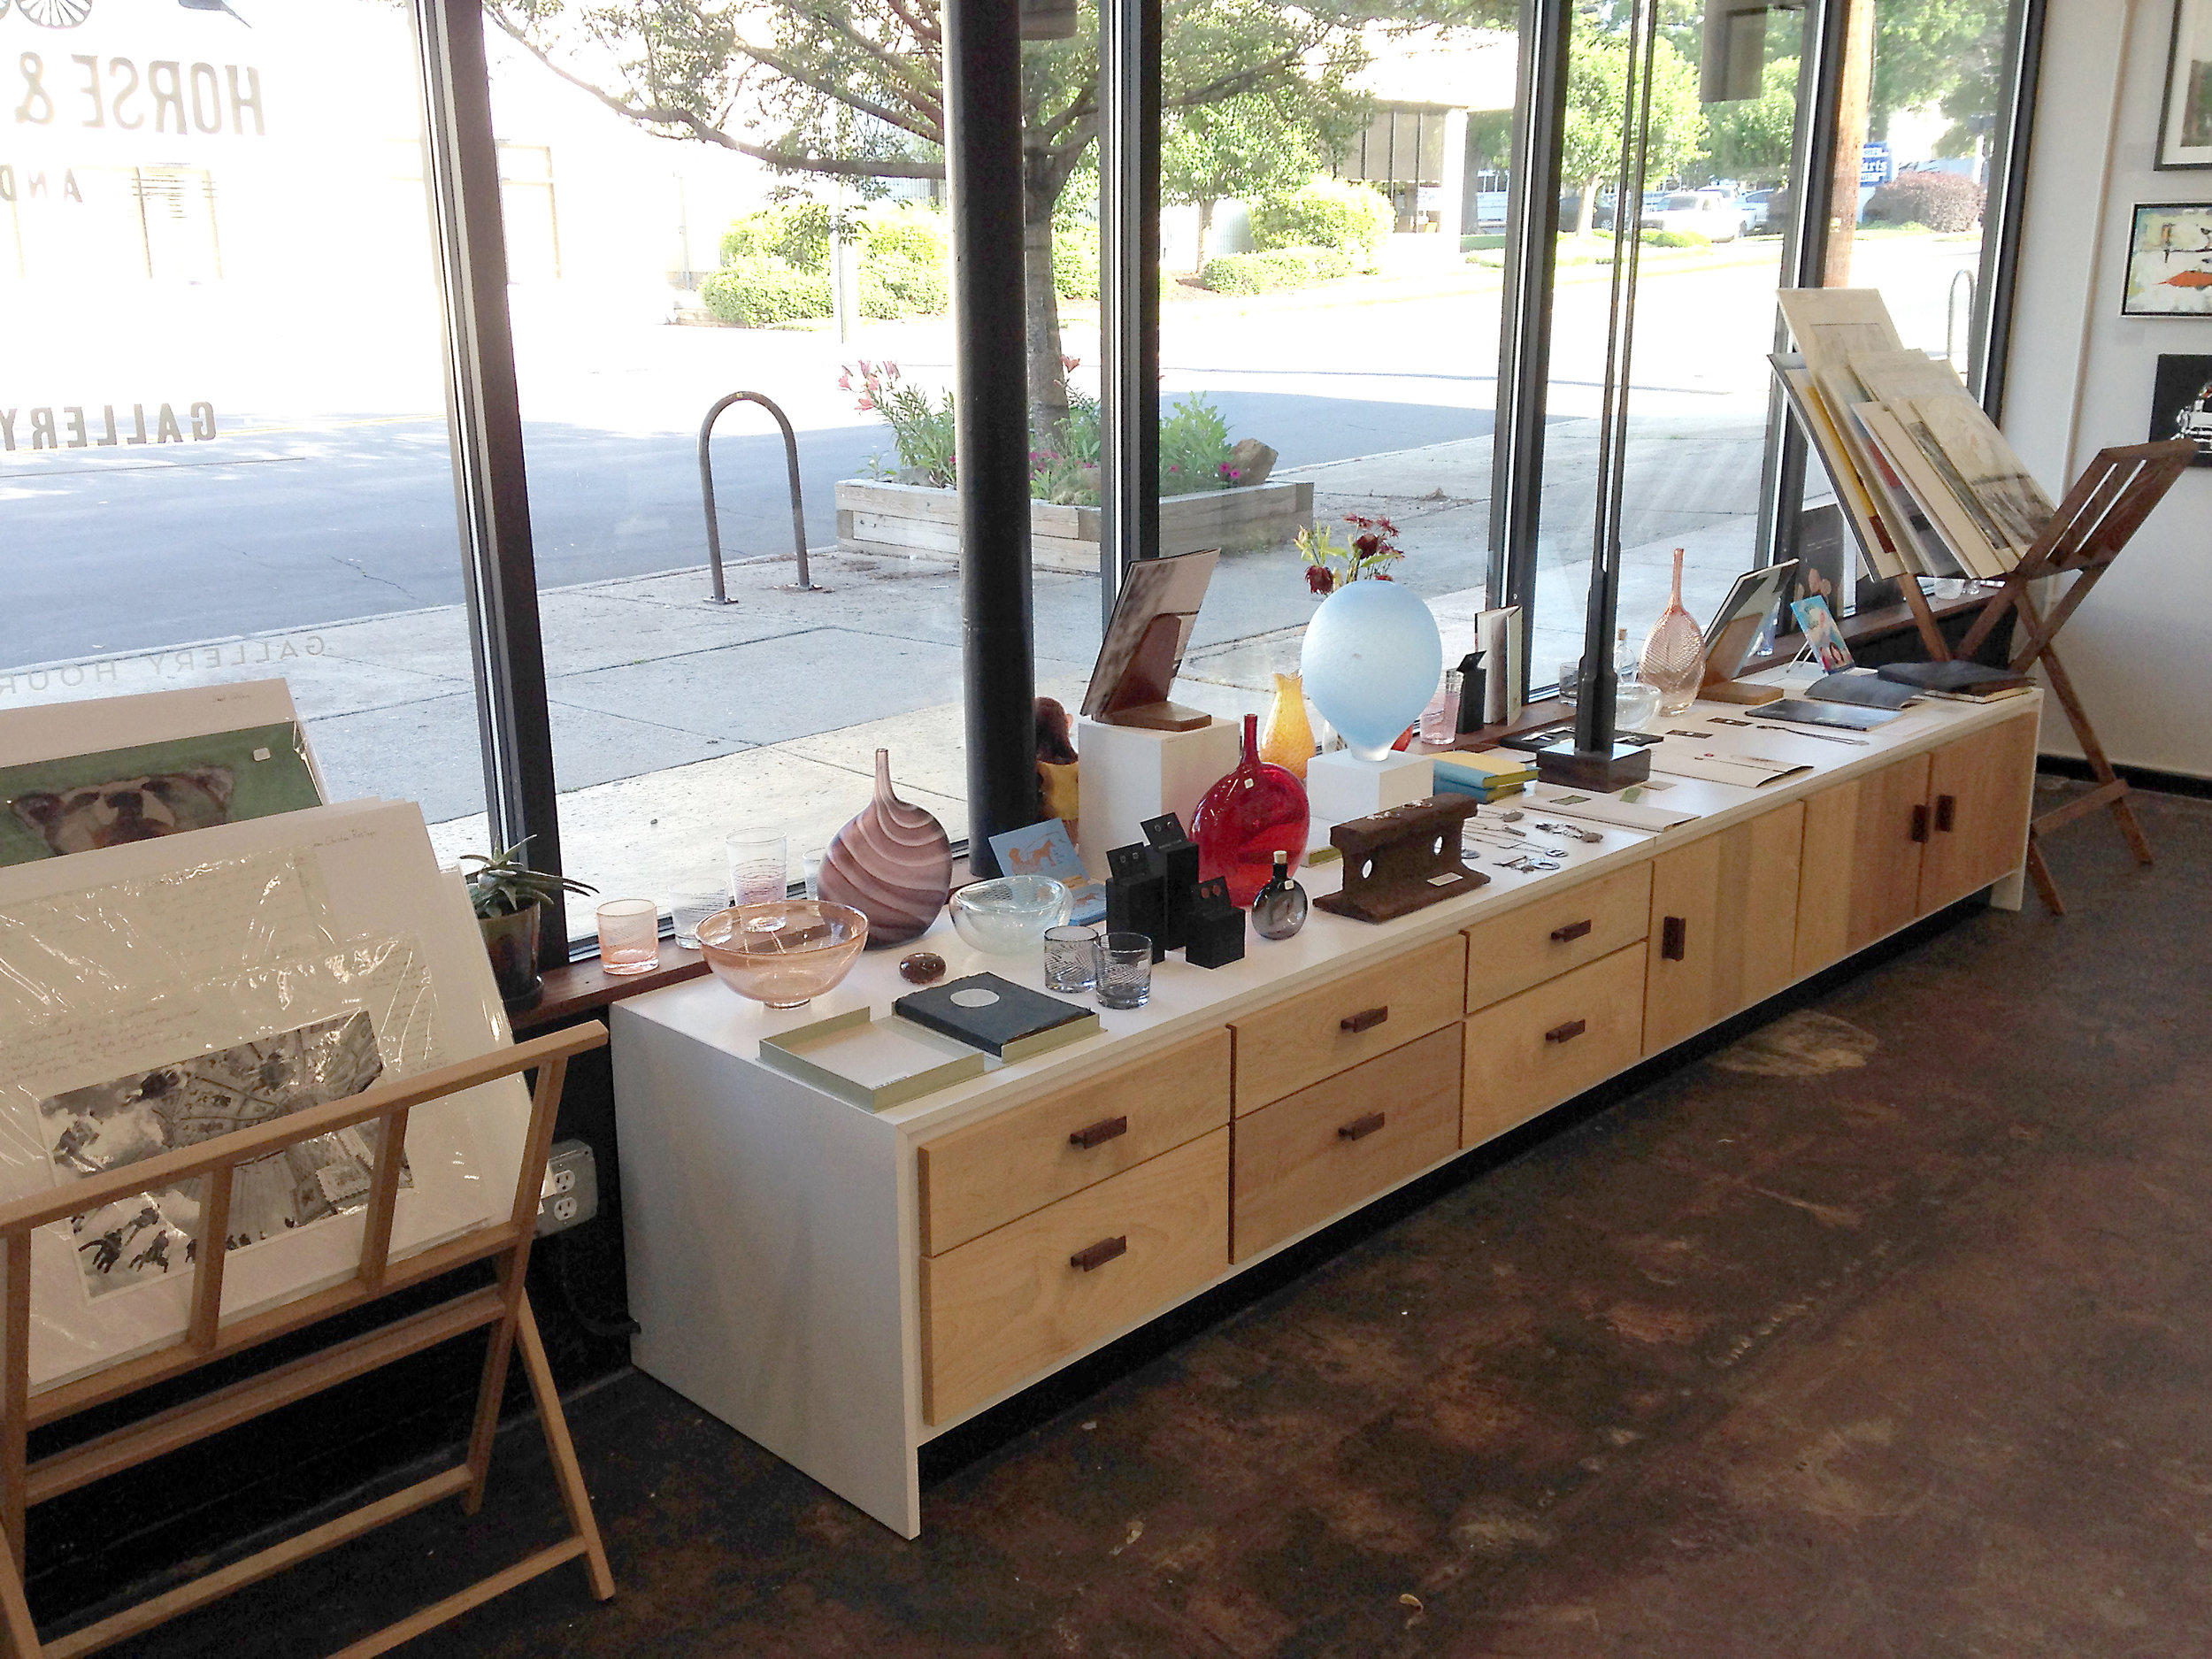 Marc Smith made much of our exhibit infrastructure including this display bench . . .